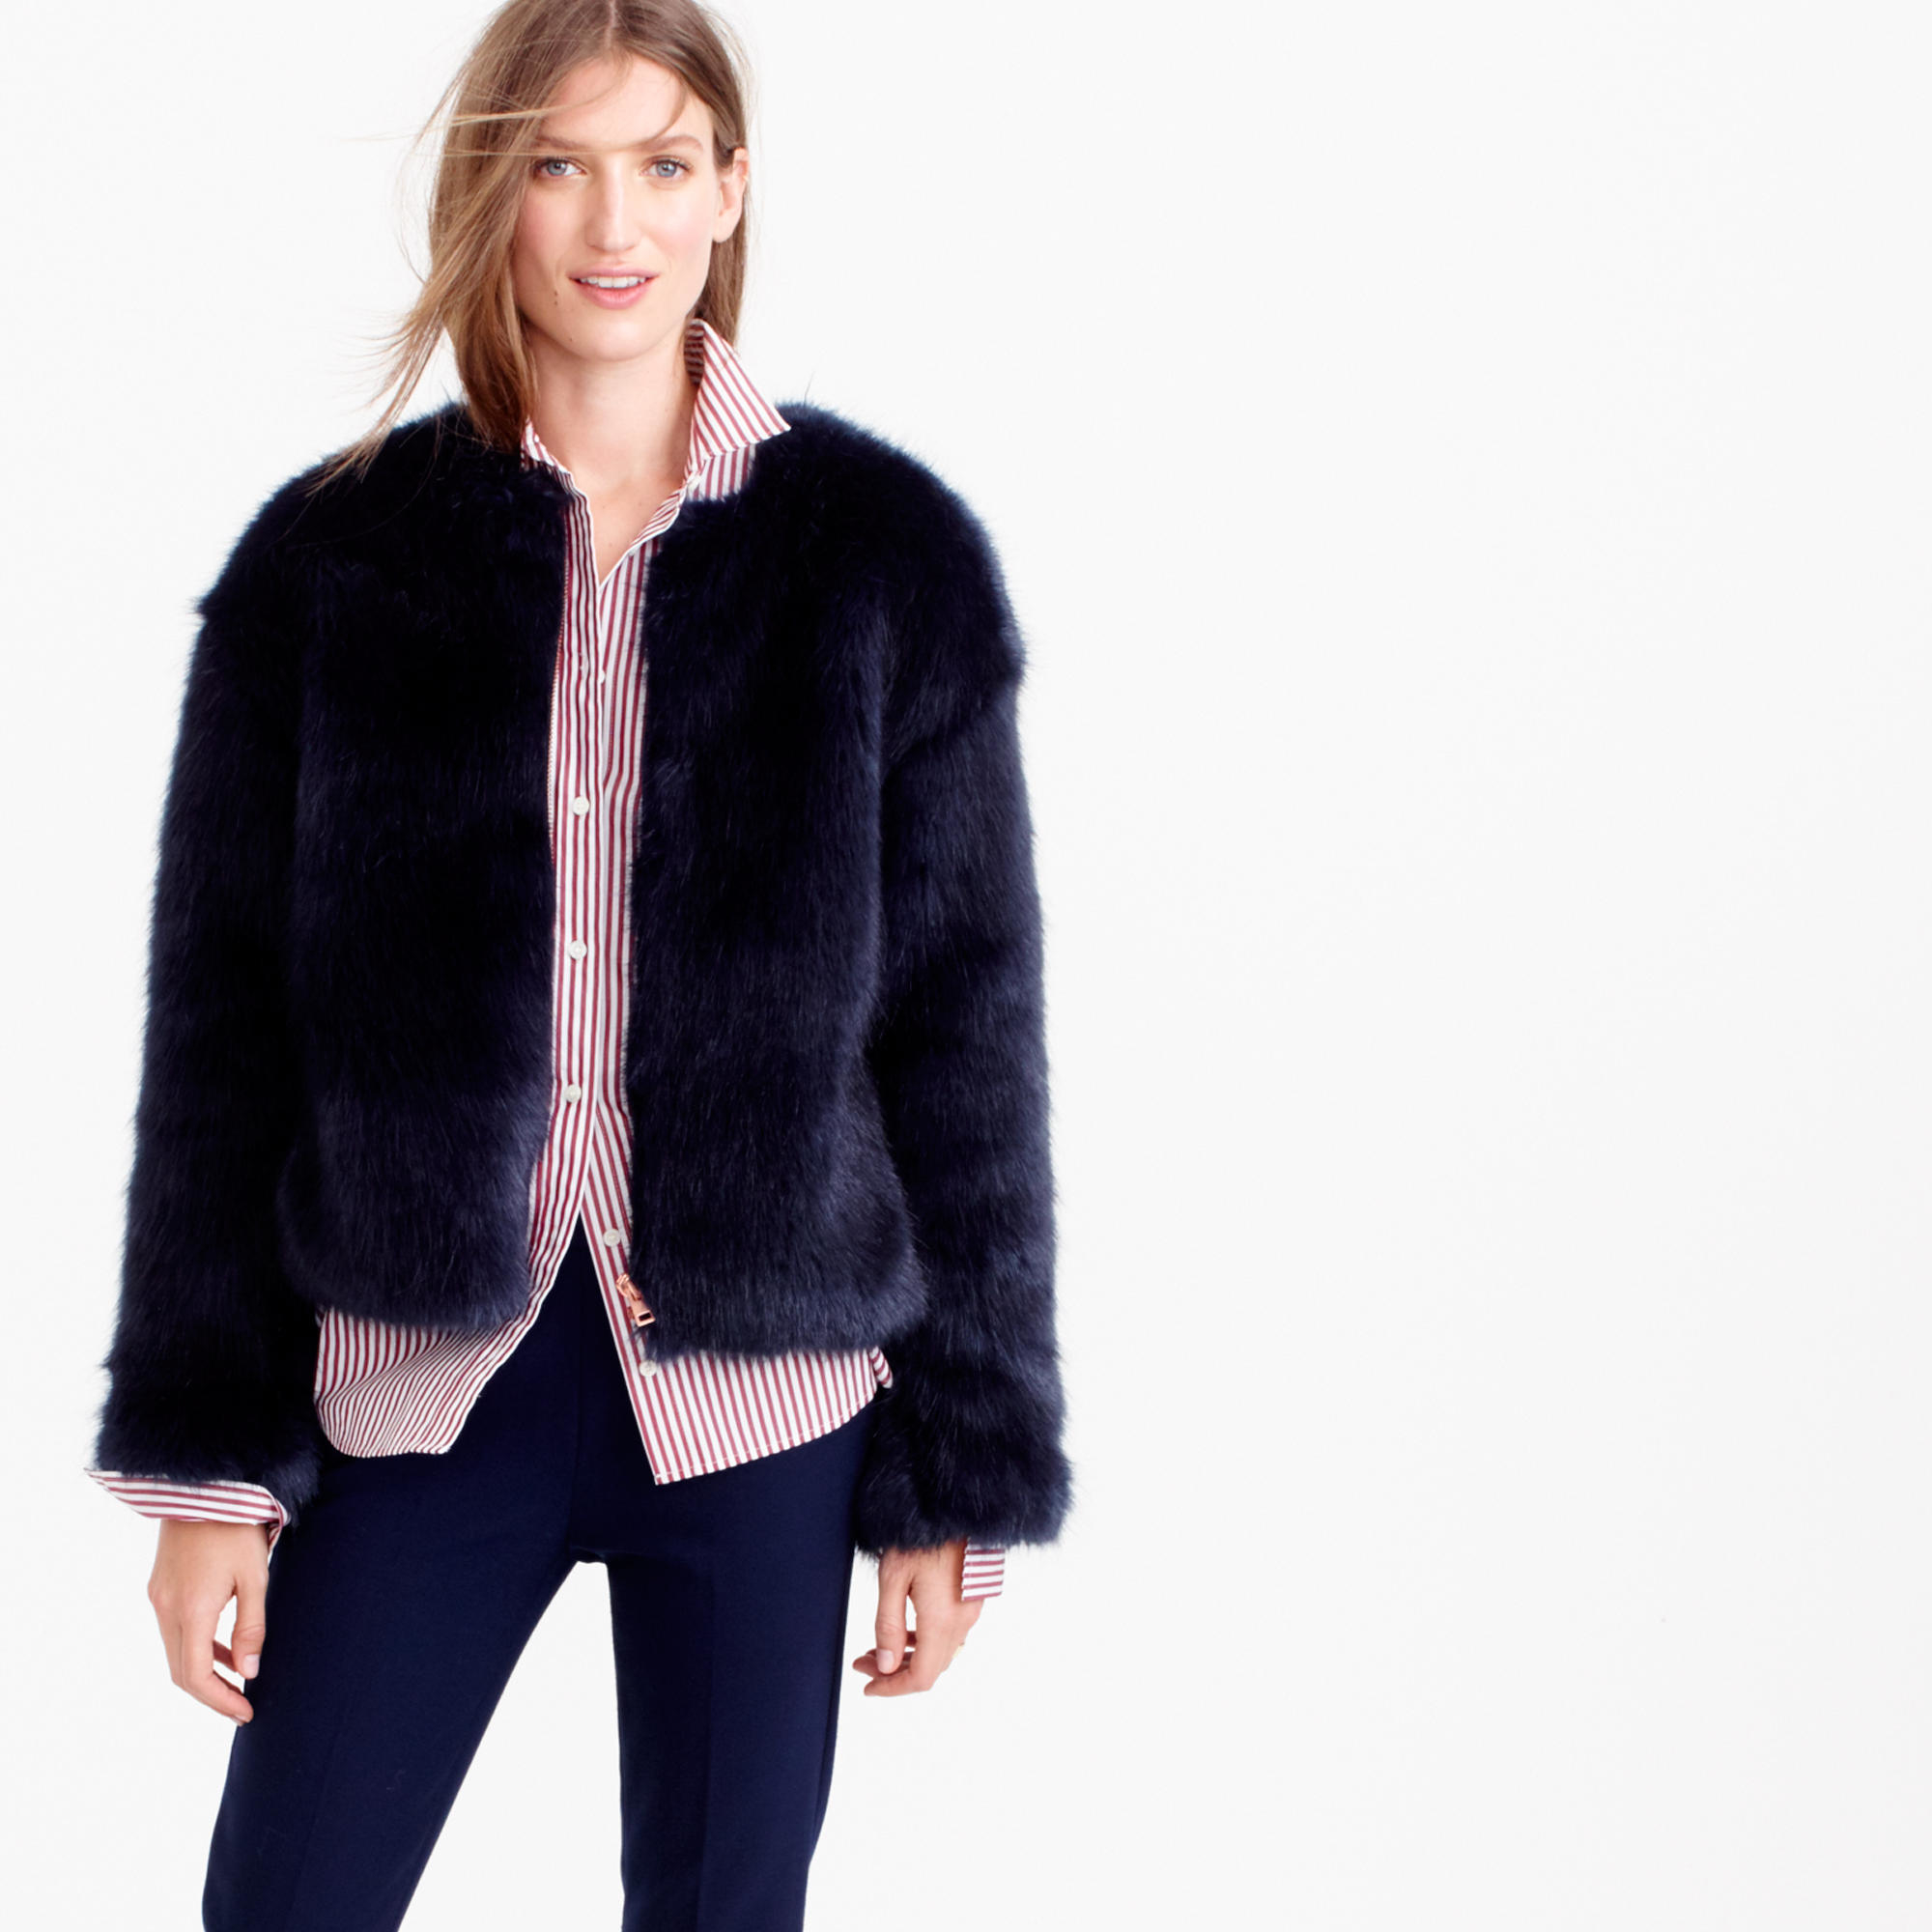 J.crew Collection Faux-fur Jacket in Blue | Lyst